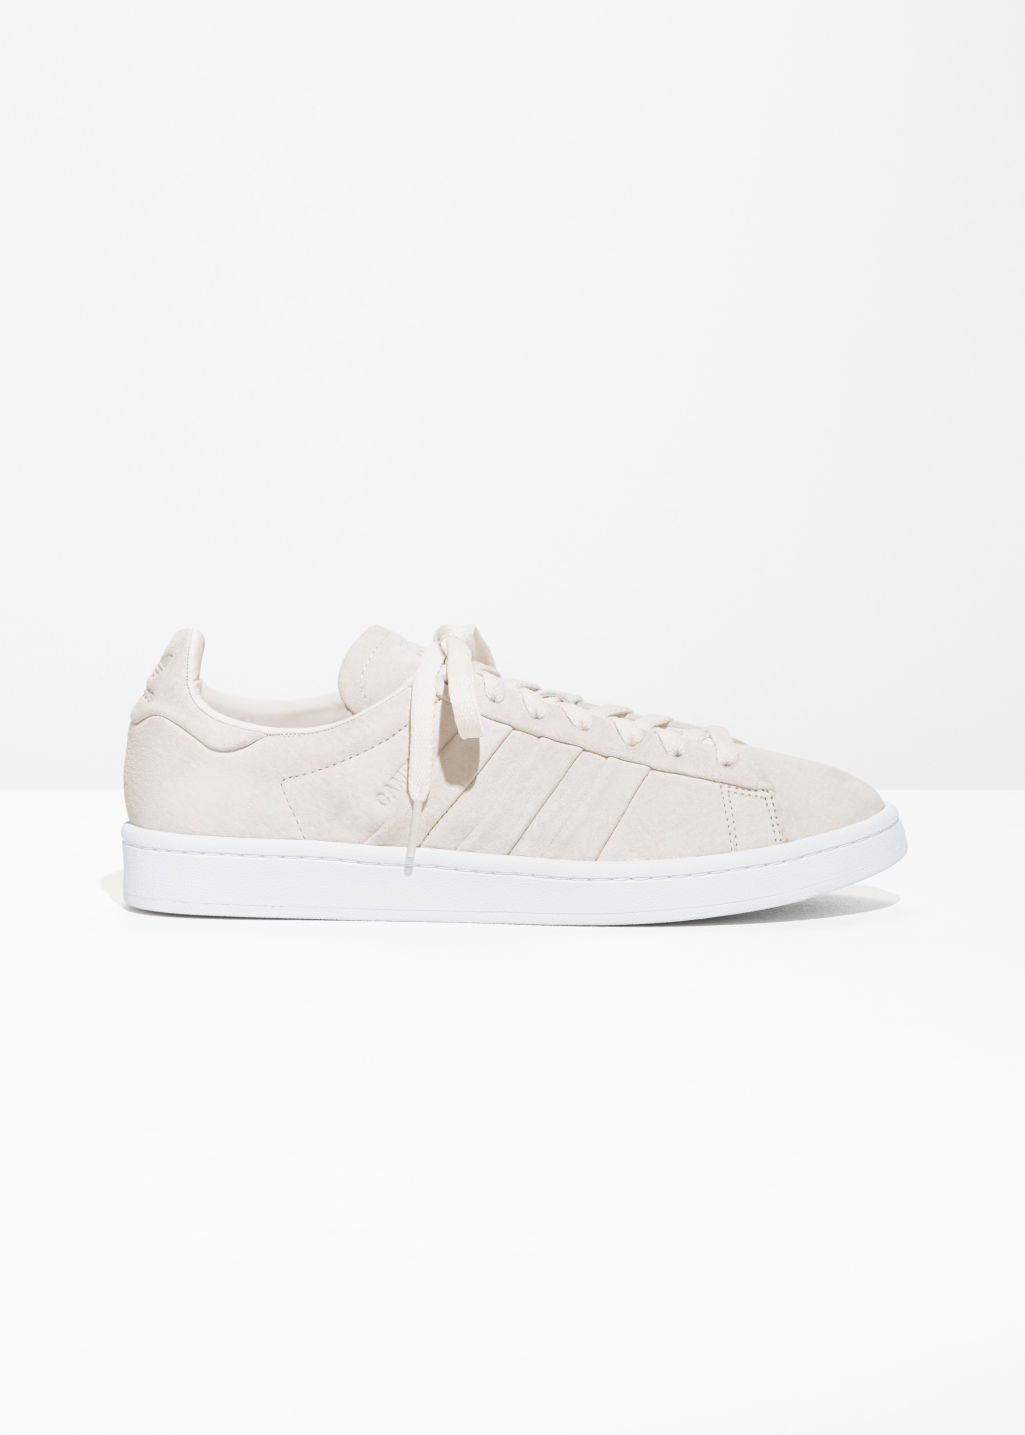 & OTHER STORIES Adidas Campus Stitch - Grey